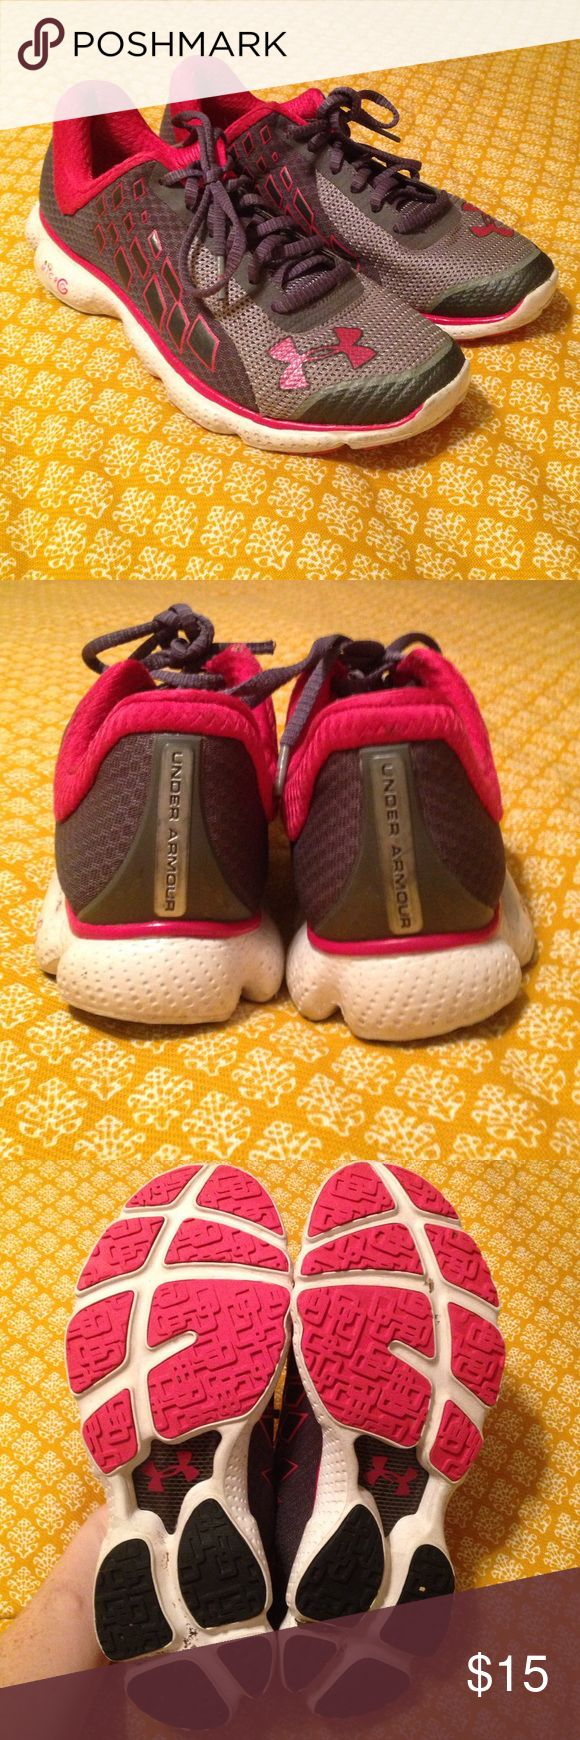 Under Armour Tennis Shoes. These are super comfortable. Worn, but not worn out. Cute colors. Light-weight for running. Under Armour Shoes Athletic Shoes